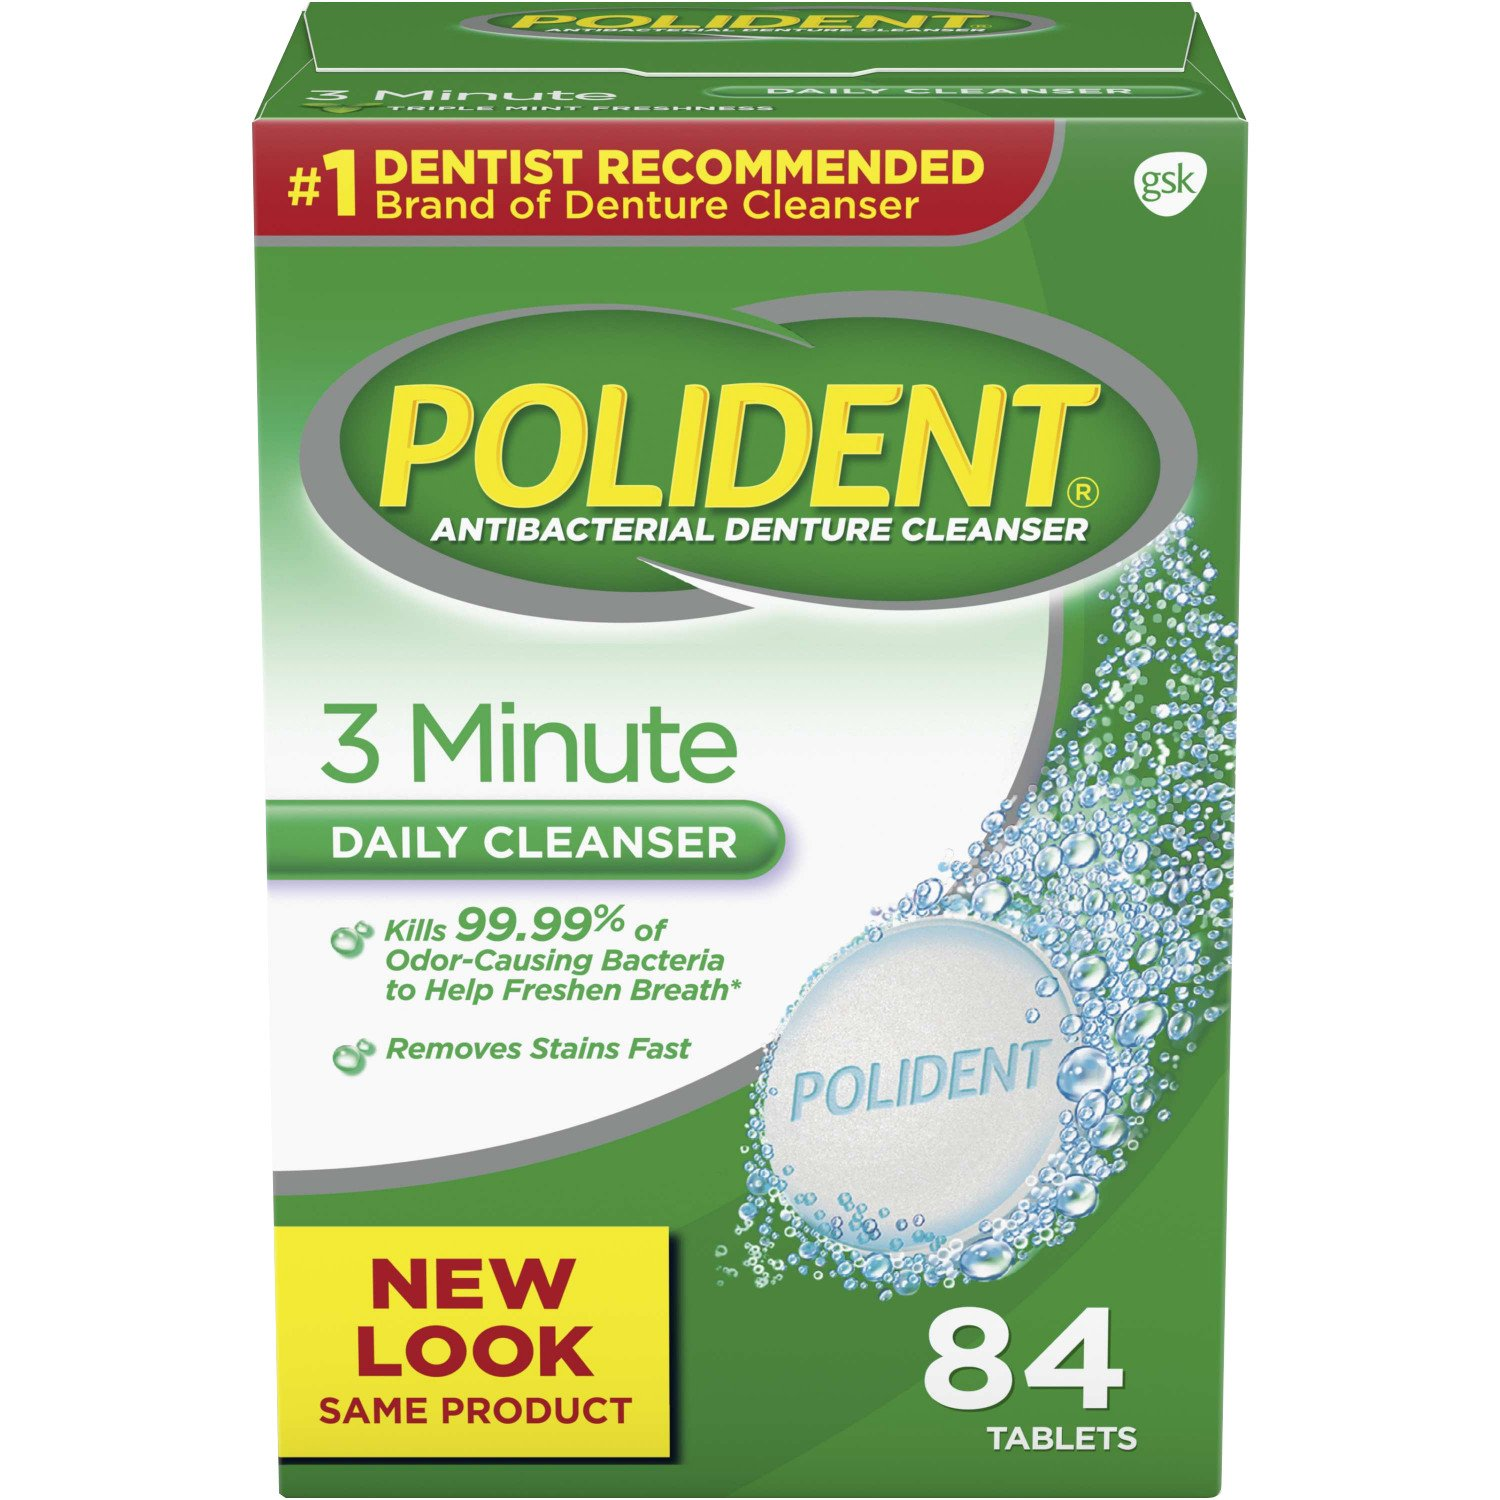 Polident 3 Minute Triple Mint Antibacterial Denture Cleanser Effervescent Tablets, 84 count (Pack of 3) 05316